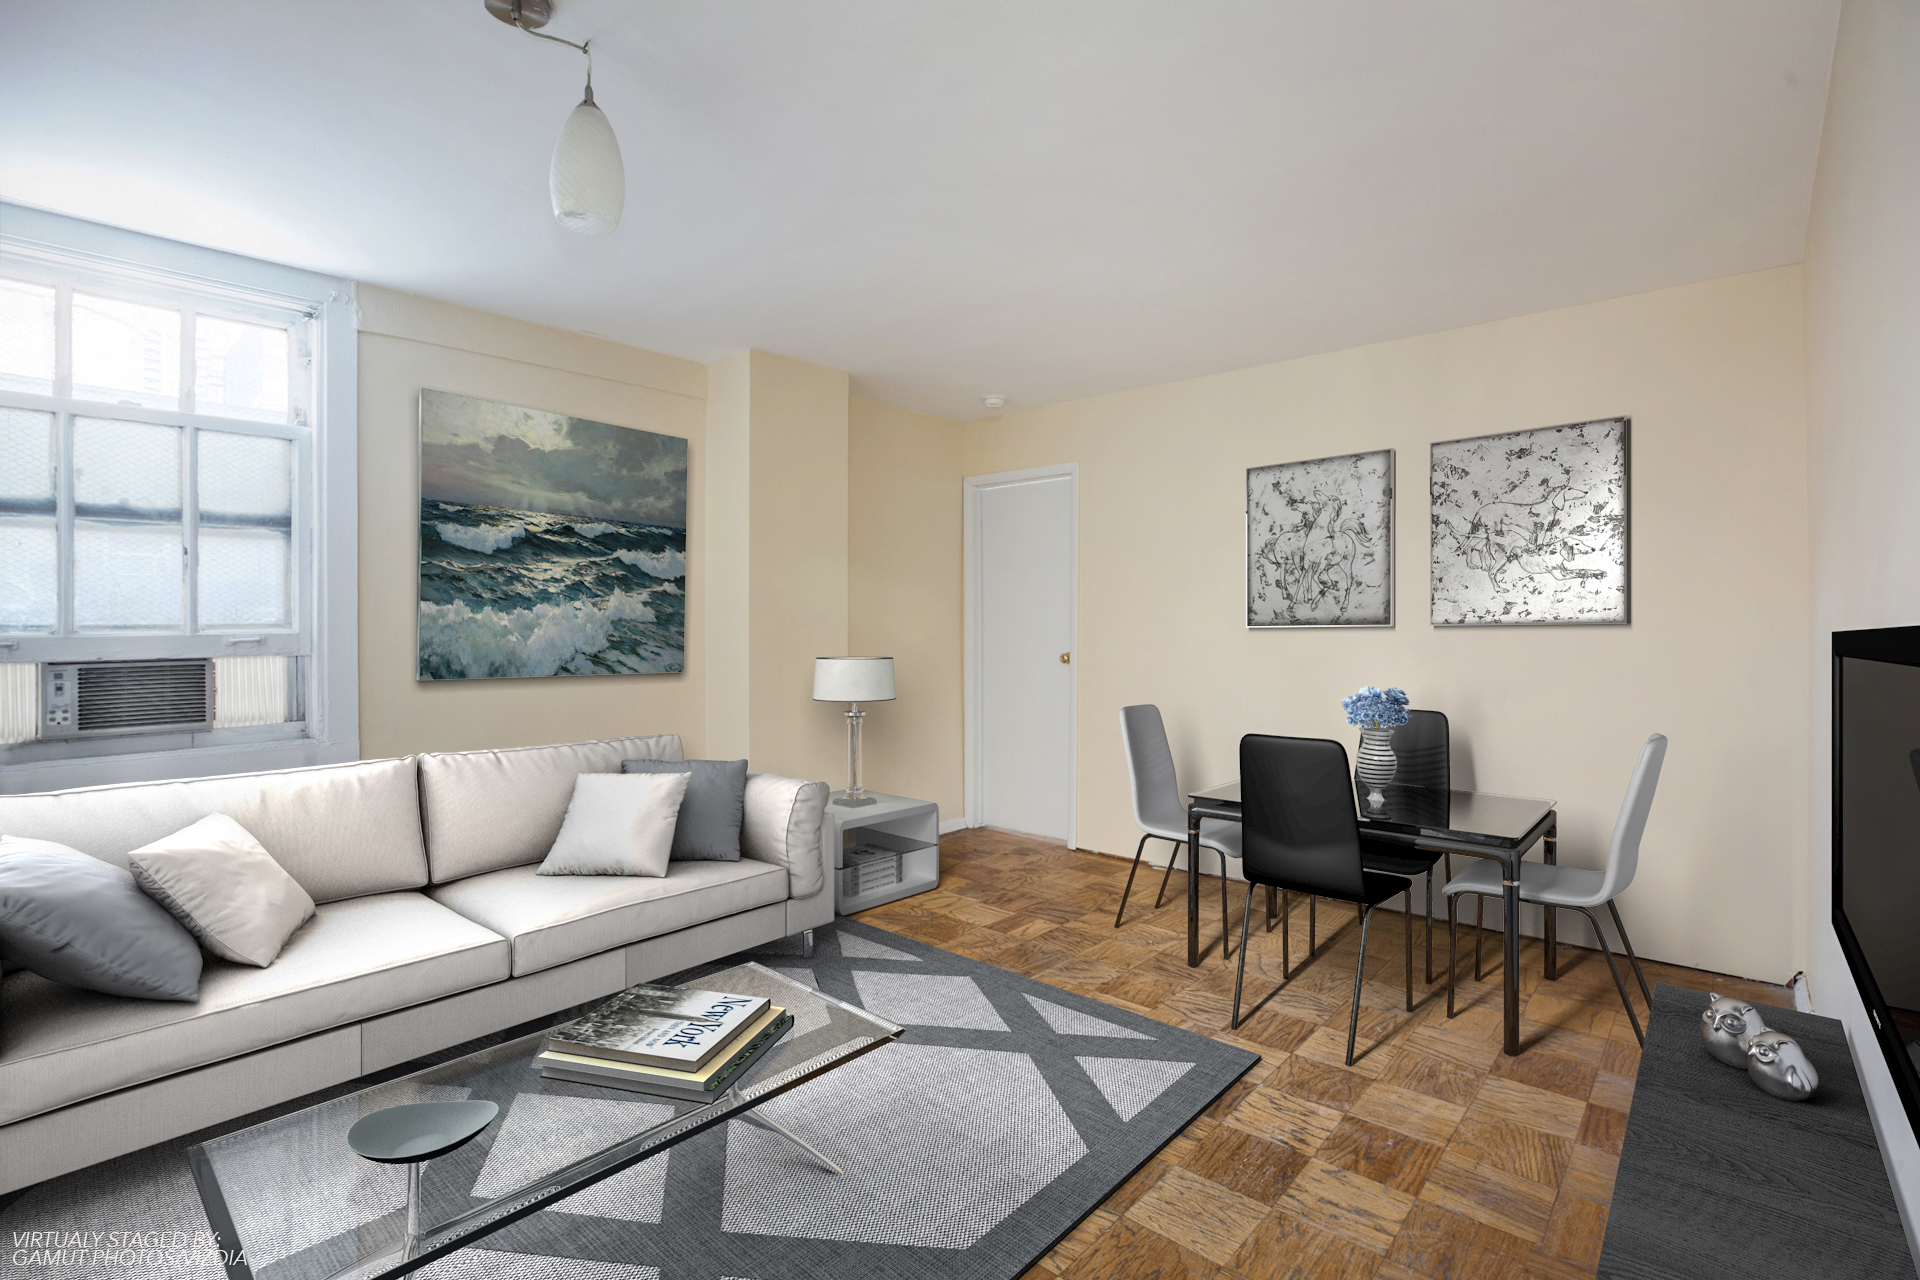 240 East 35th Street, #4A - $595,000